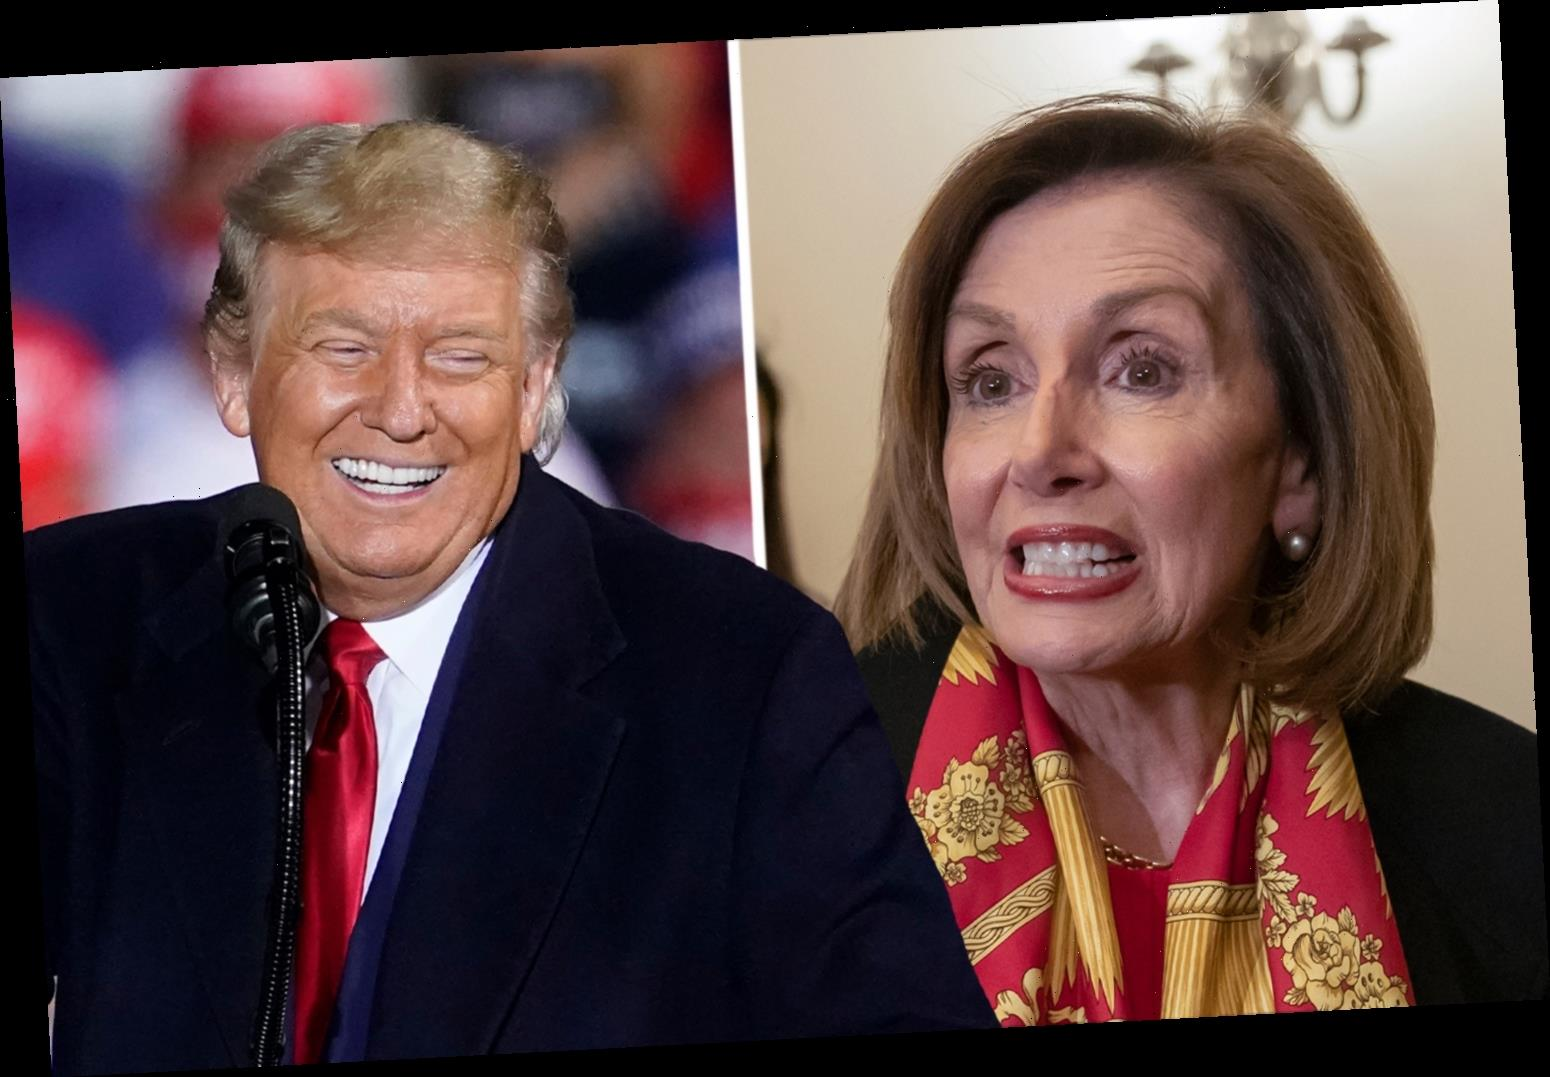 Trump promises 'best stimulus package you've ever seen' after election and blames Pelosi for delay